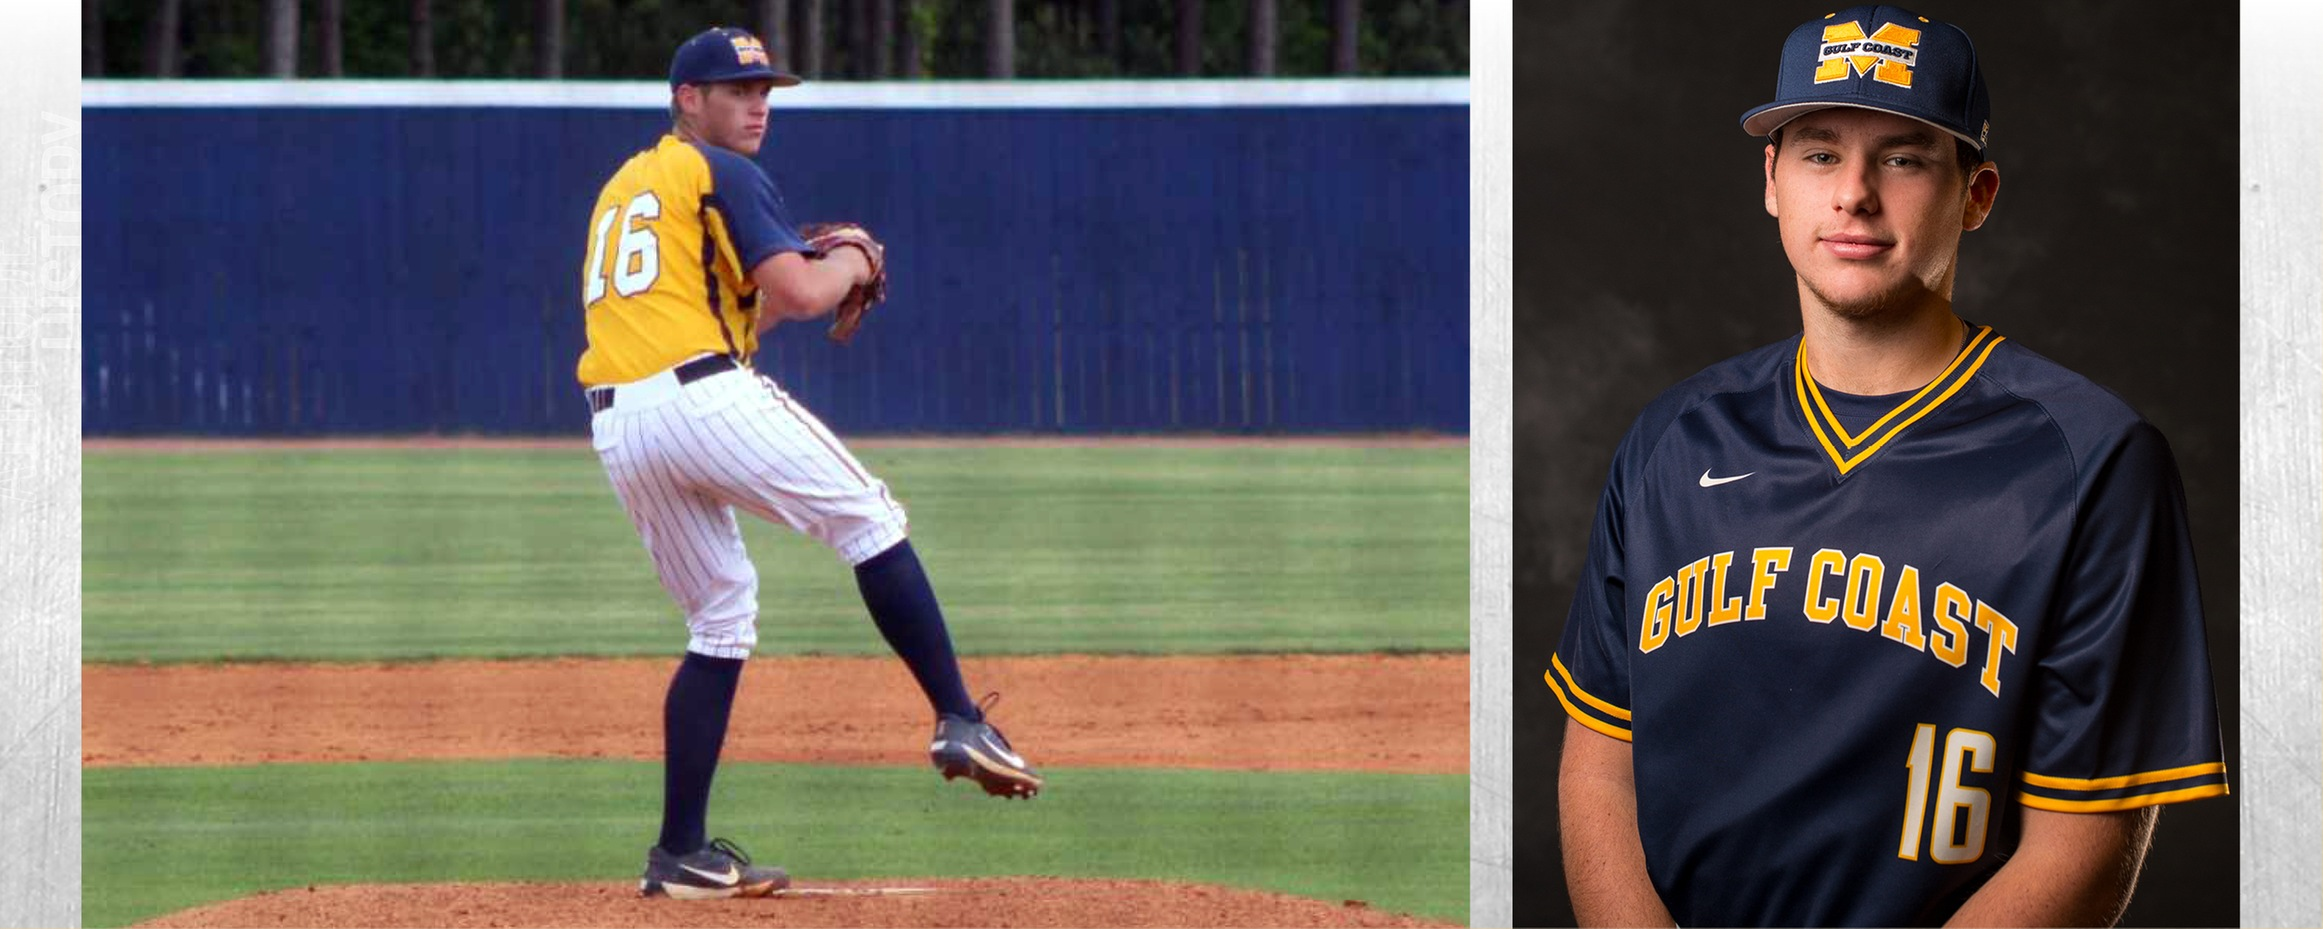 Lewis named MACJC Pitcher of the Week